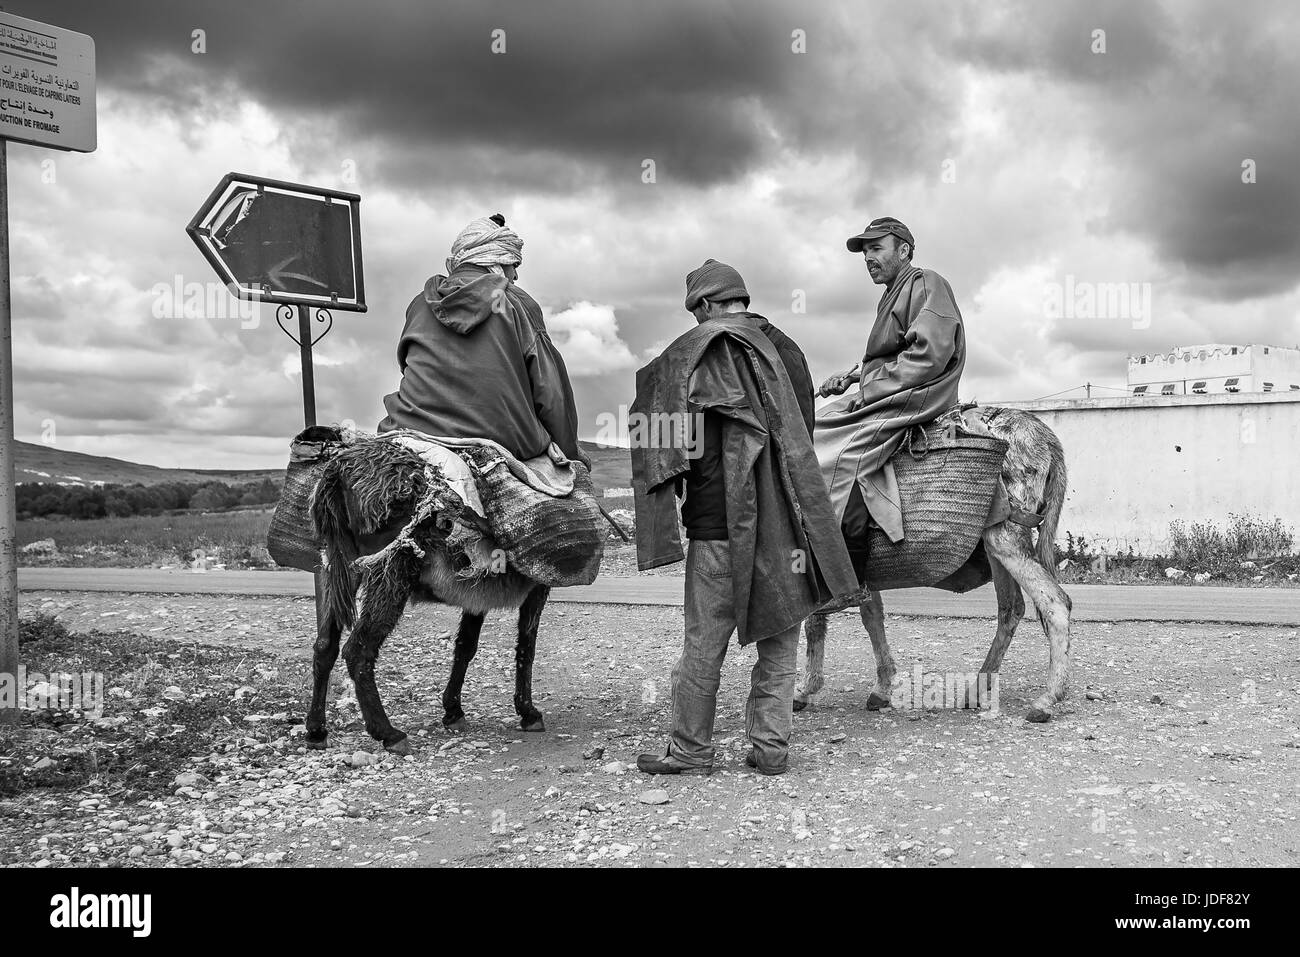 Three men in Moroccan country riding donkeys - Stock Image